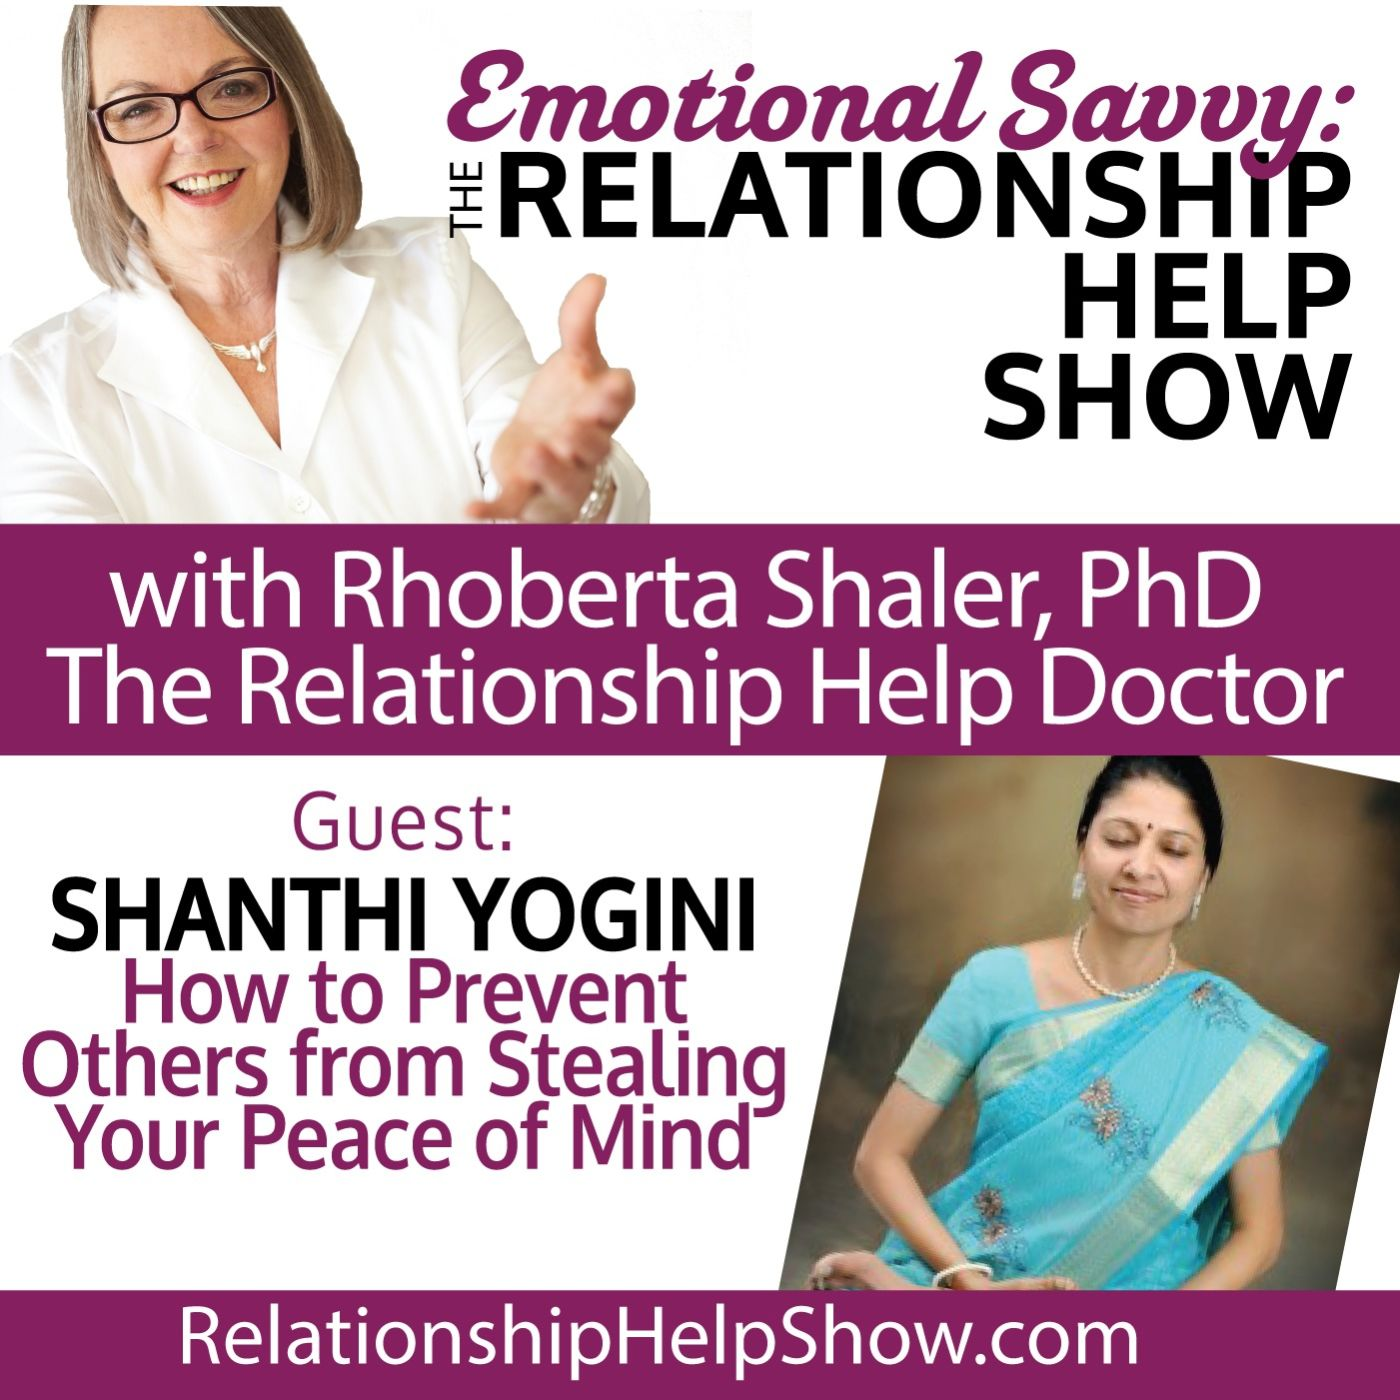 How to Prevent Others from Stealing Your Peace of Mind. GUEST - Shanthi Yogini